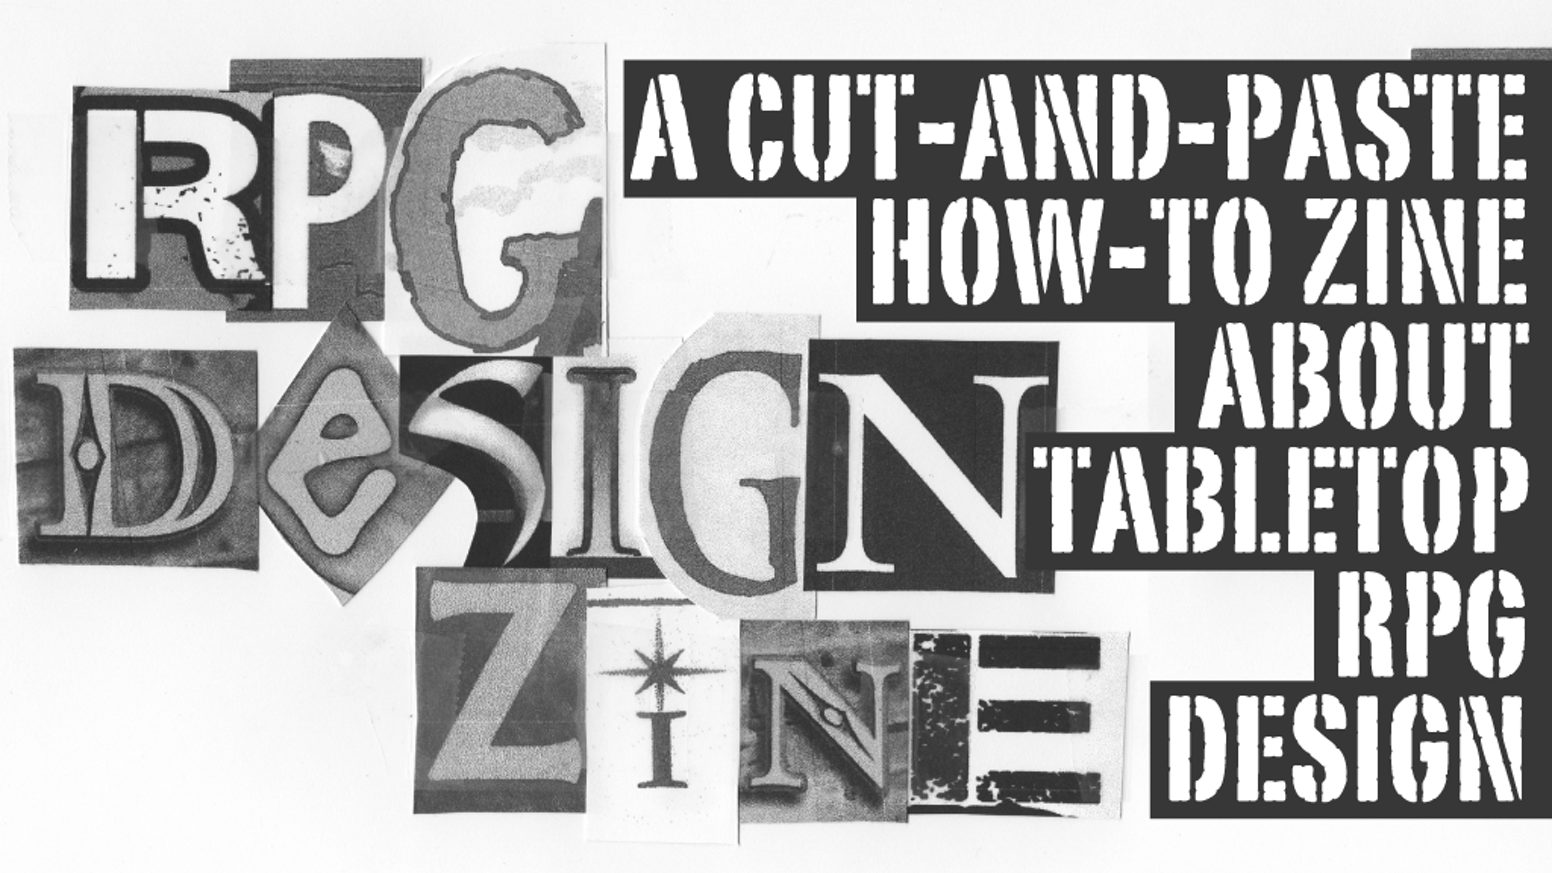 A cut-and-paste zine about game design.